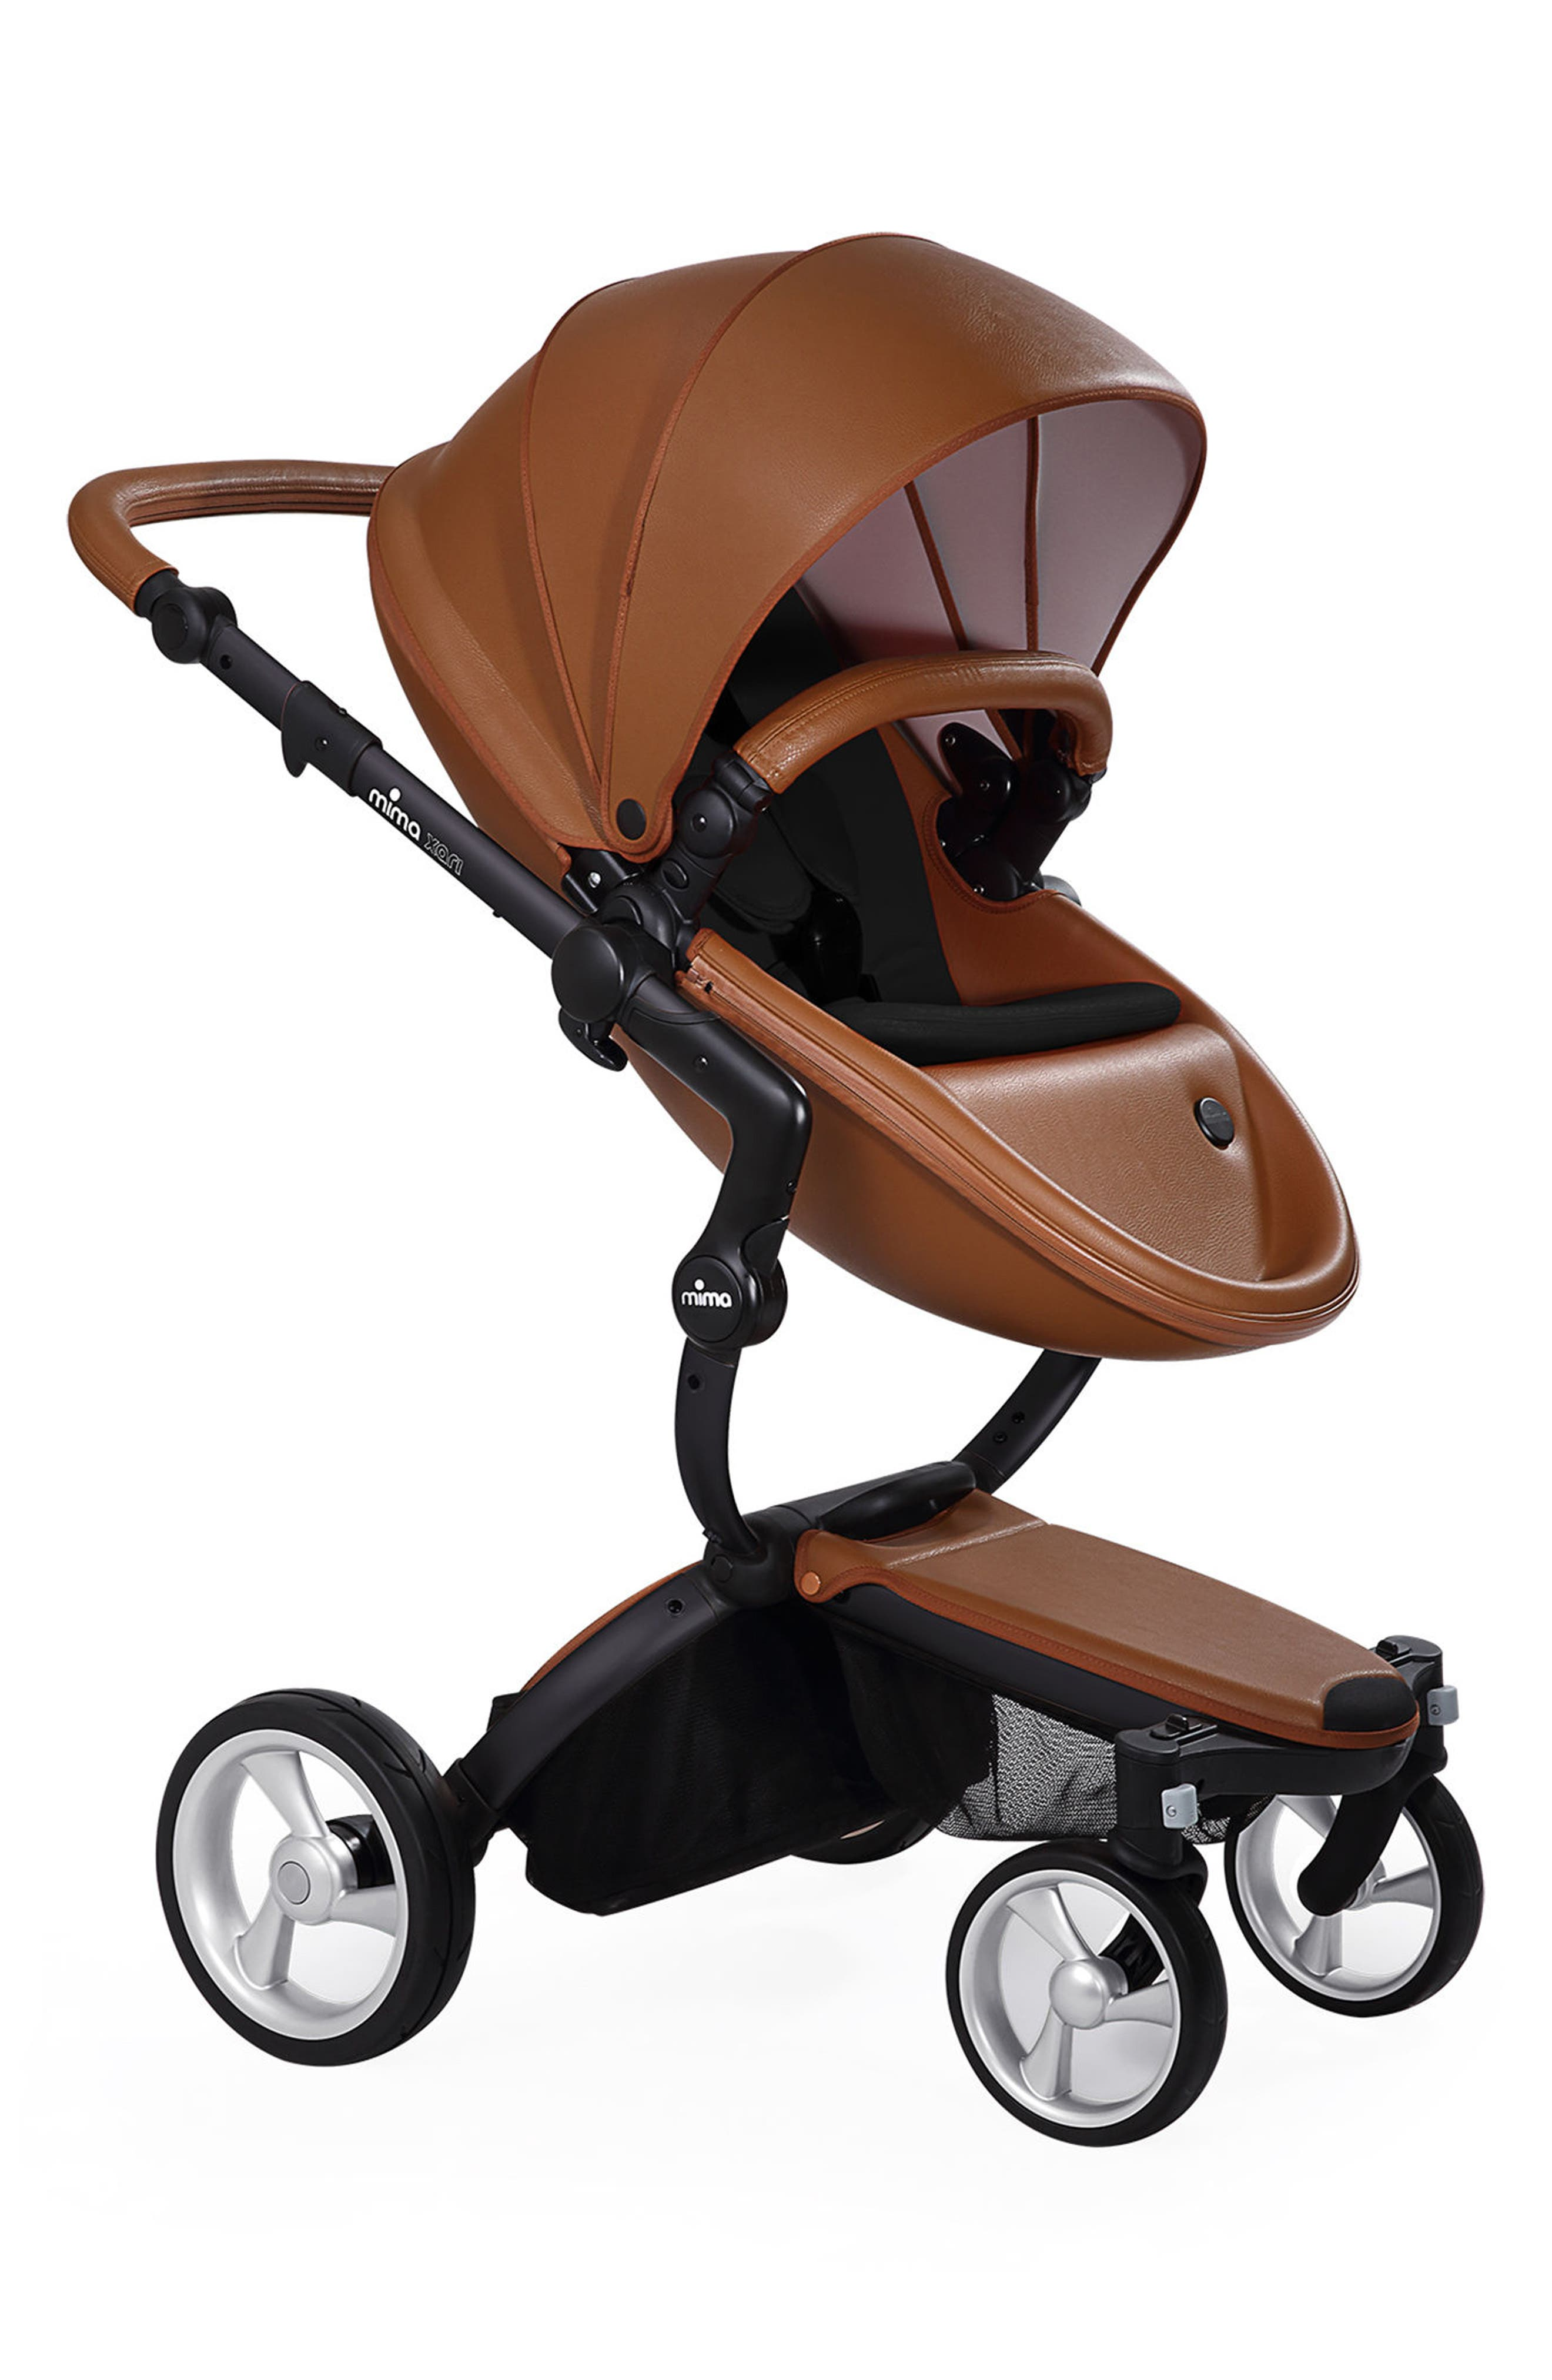 Xari Black Chassis Stroller with Reversible Reclining Seat & Carrycot,                         Main,                         color, Camel / Black